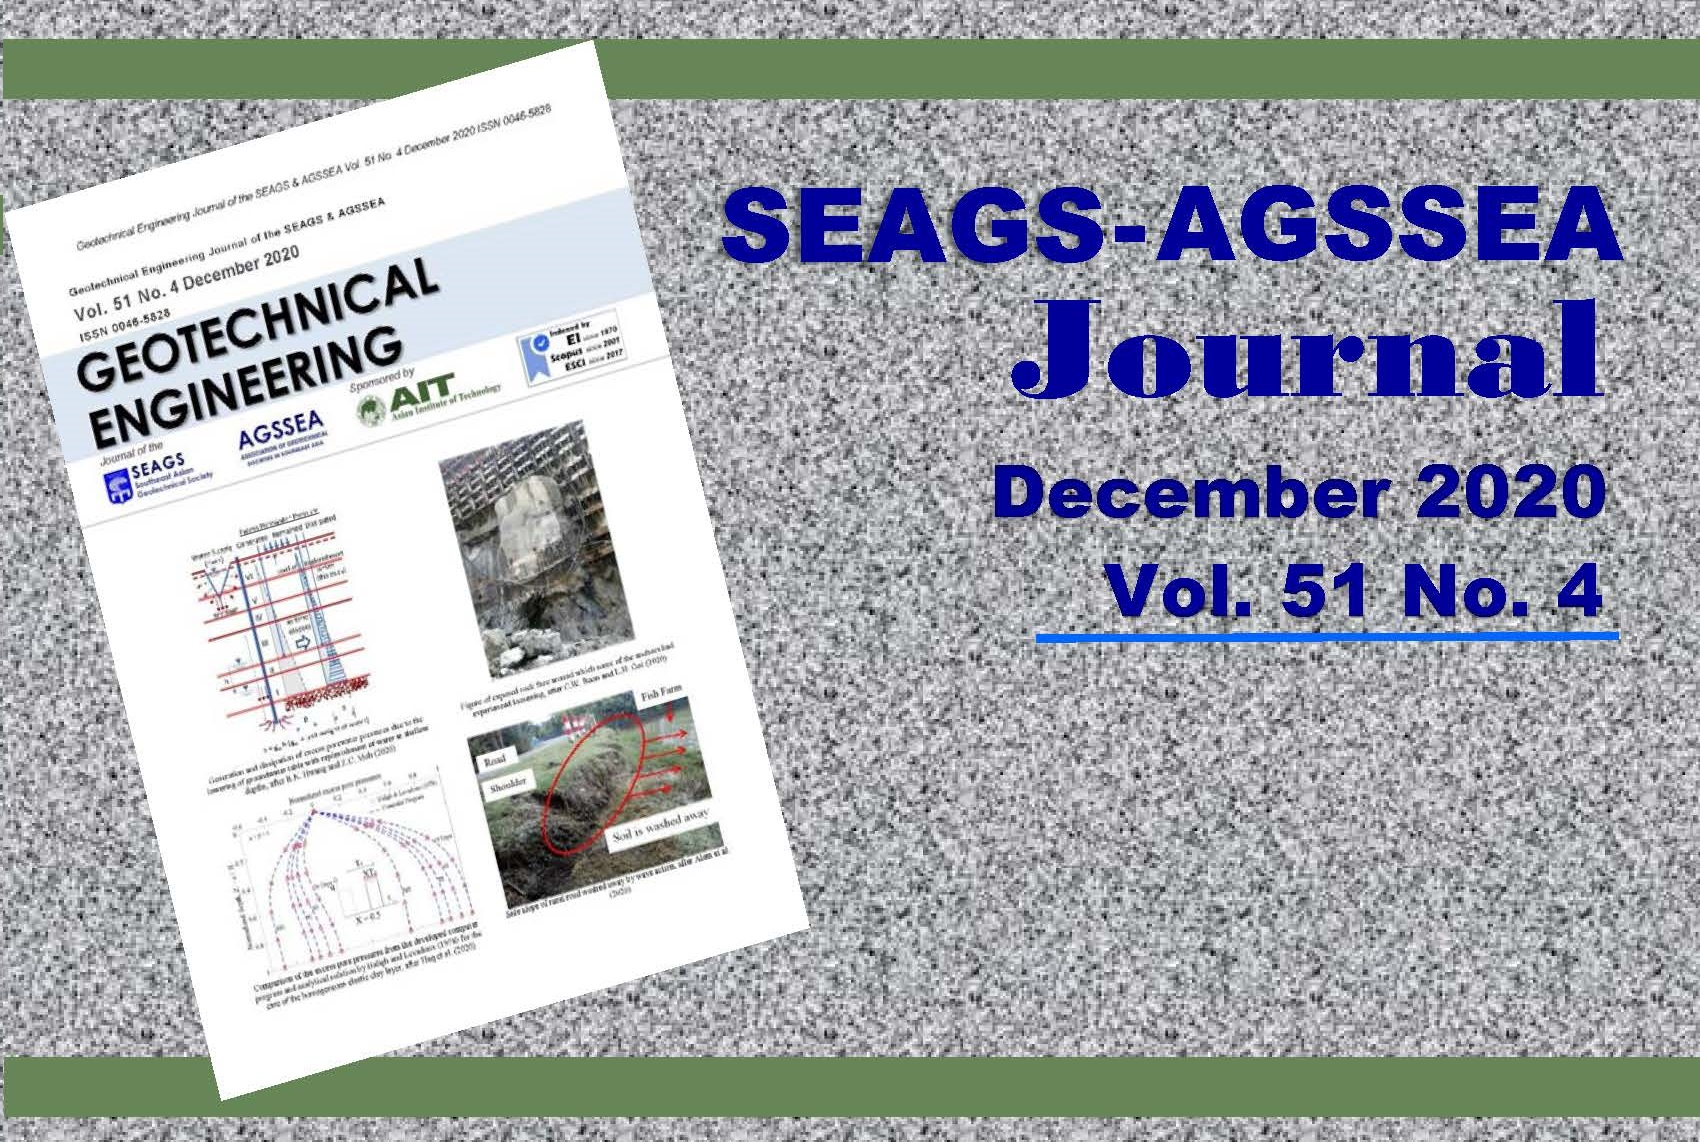 Geotechnical Engineering Journal of the SEAGS & AGSSEA Vol. 51 No. 4 December 2020 ISSN 0046-5828 Sponsored by:Asian Institute of Technology Contents and Abstracts Supporting the Observational Approach in Construction […]